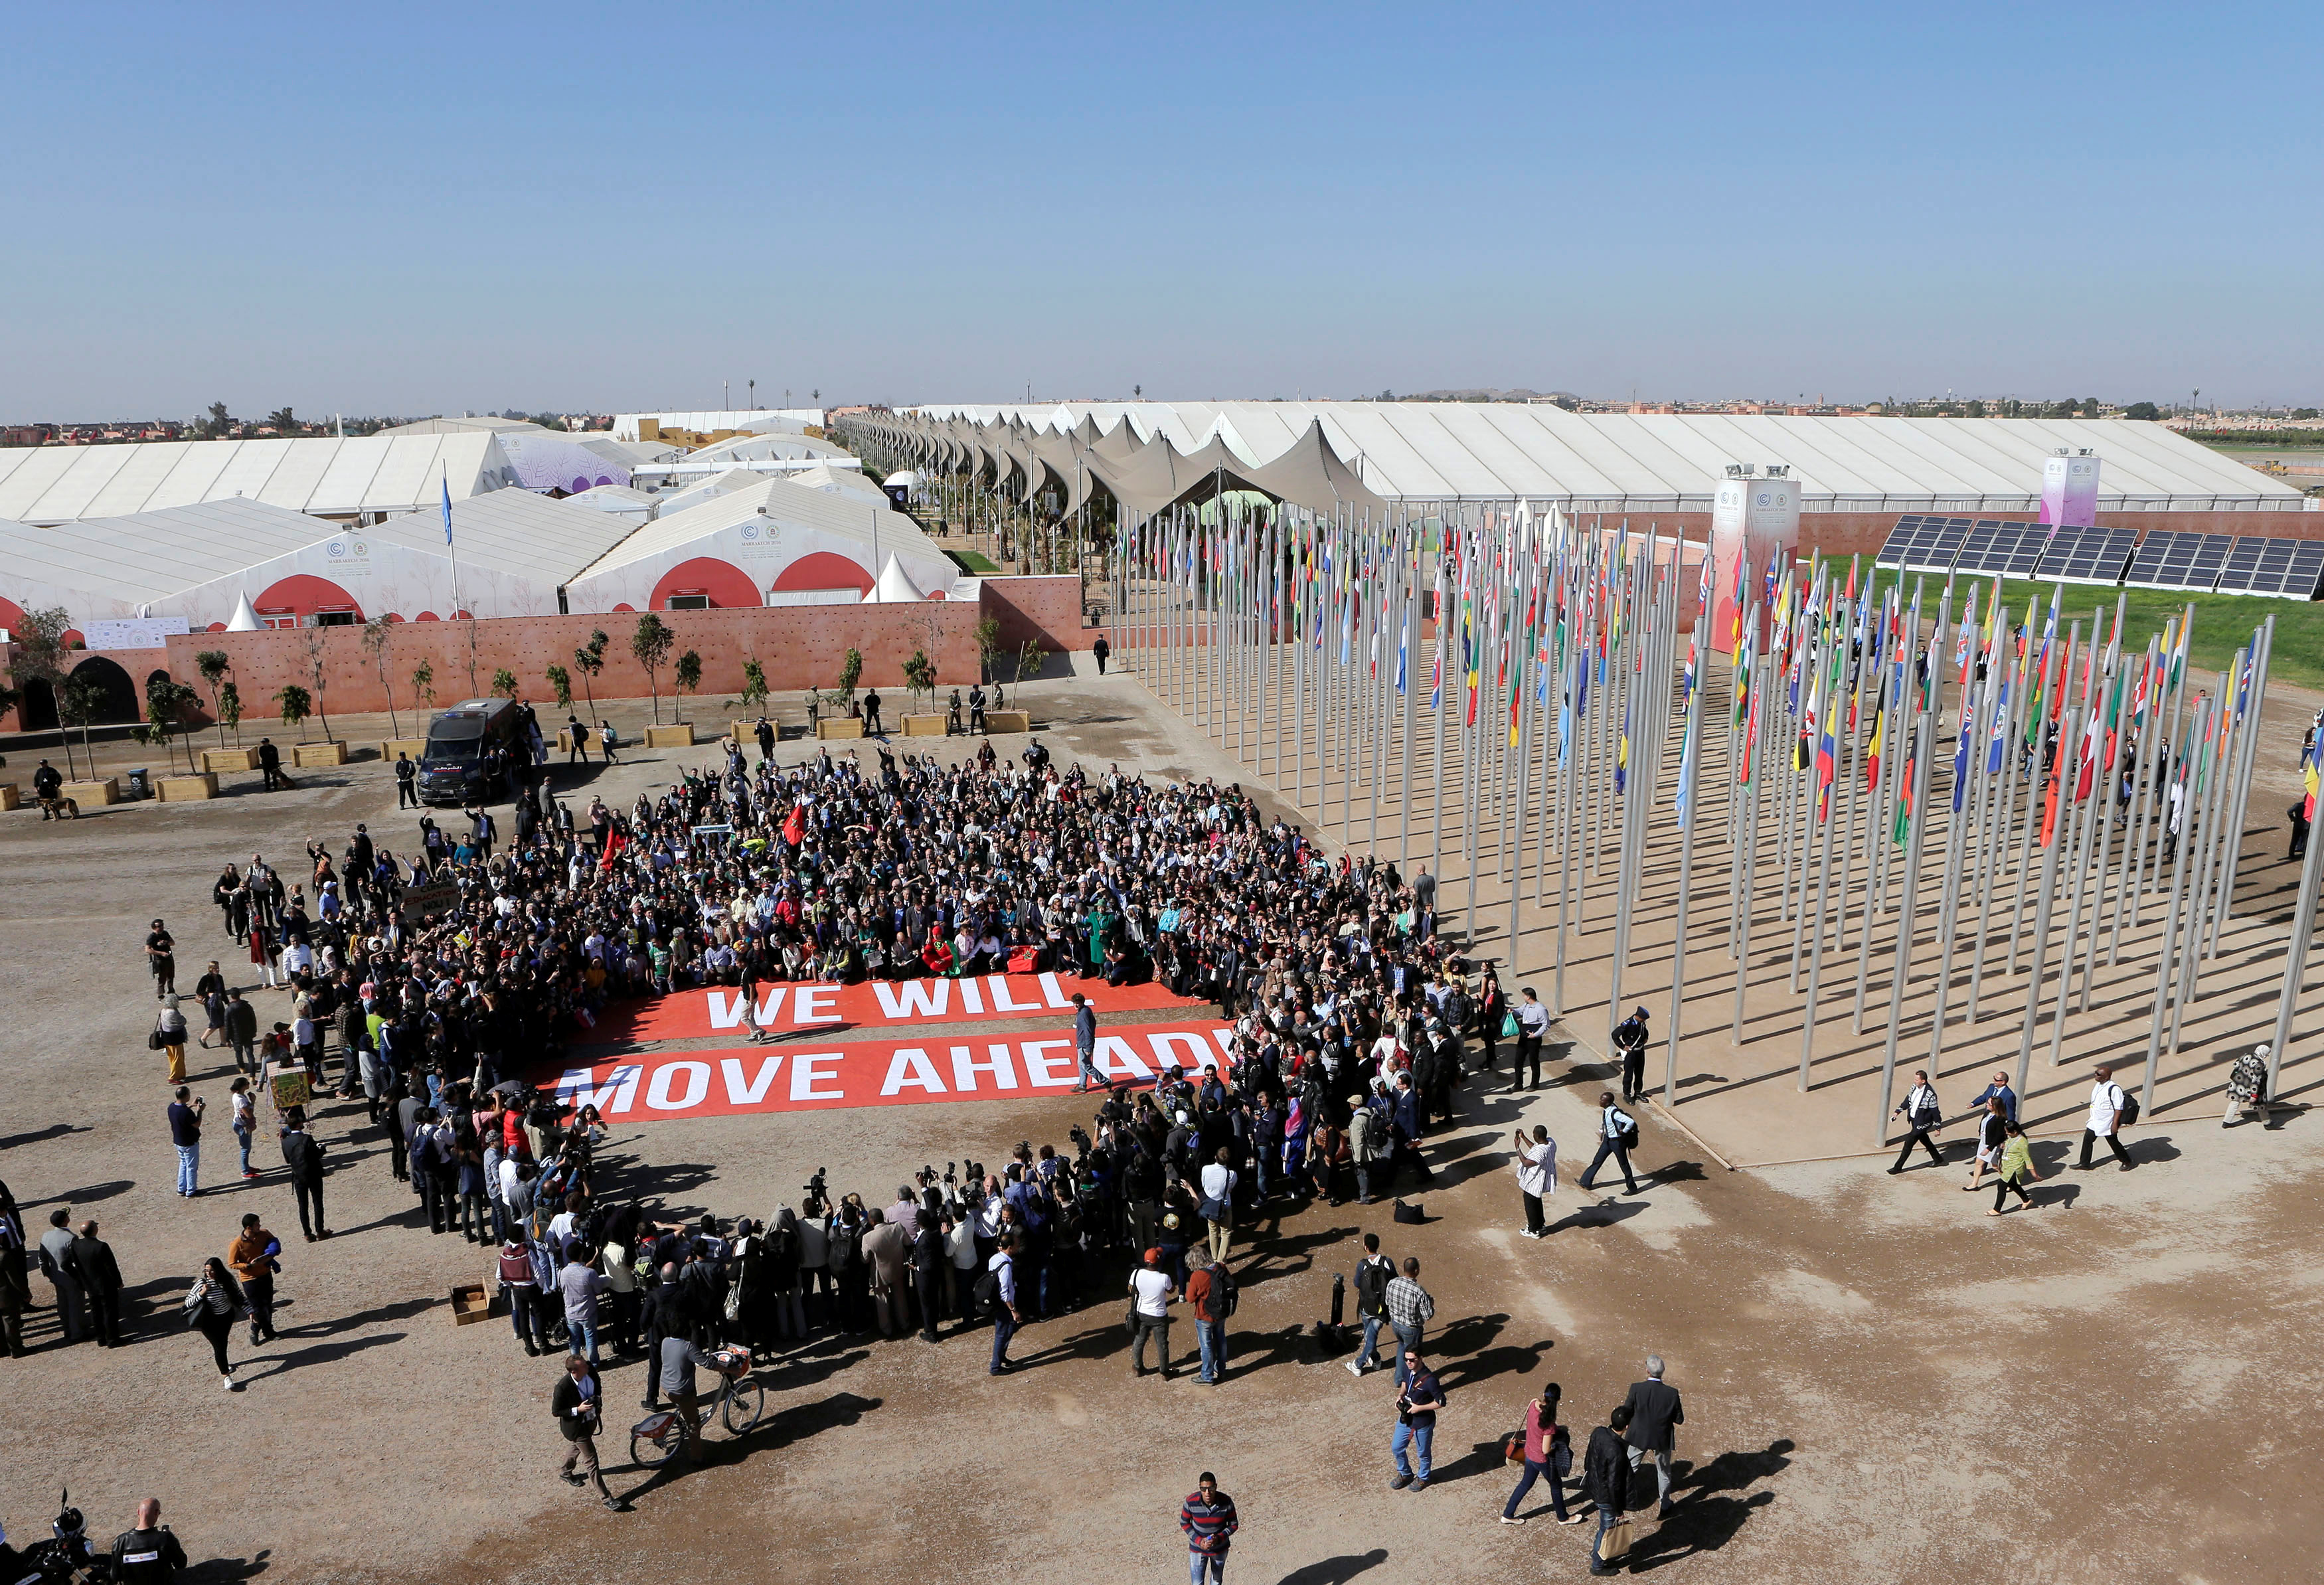 Climate activists protest outside this month's UN Climate Change Conference in Marrakech. Activists and officials are strugling to find a way forward for last year's landmark Paris Agreement on climate change after the US presidential election.